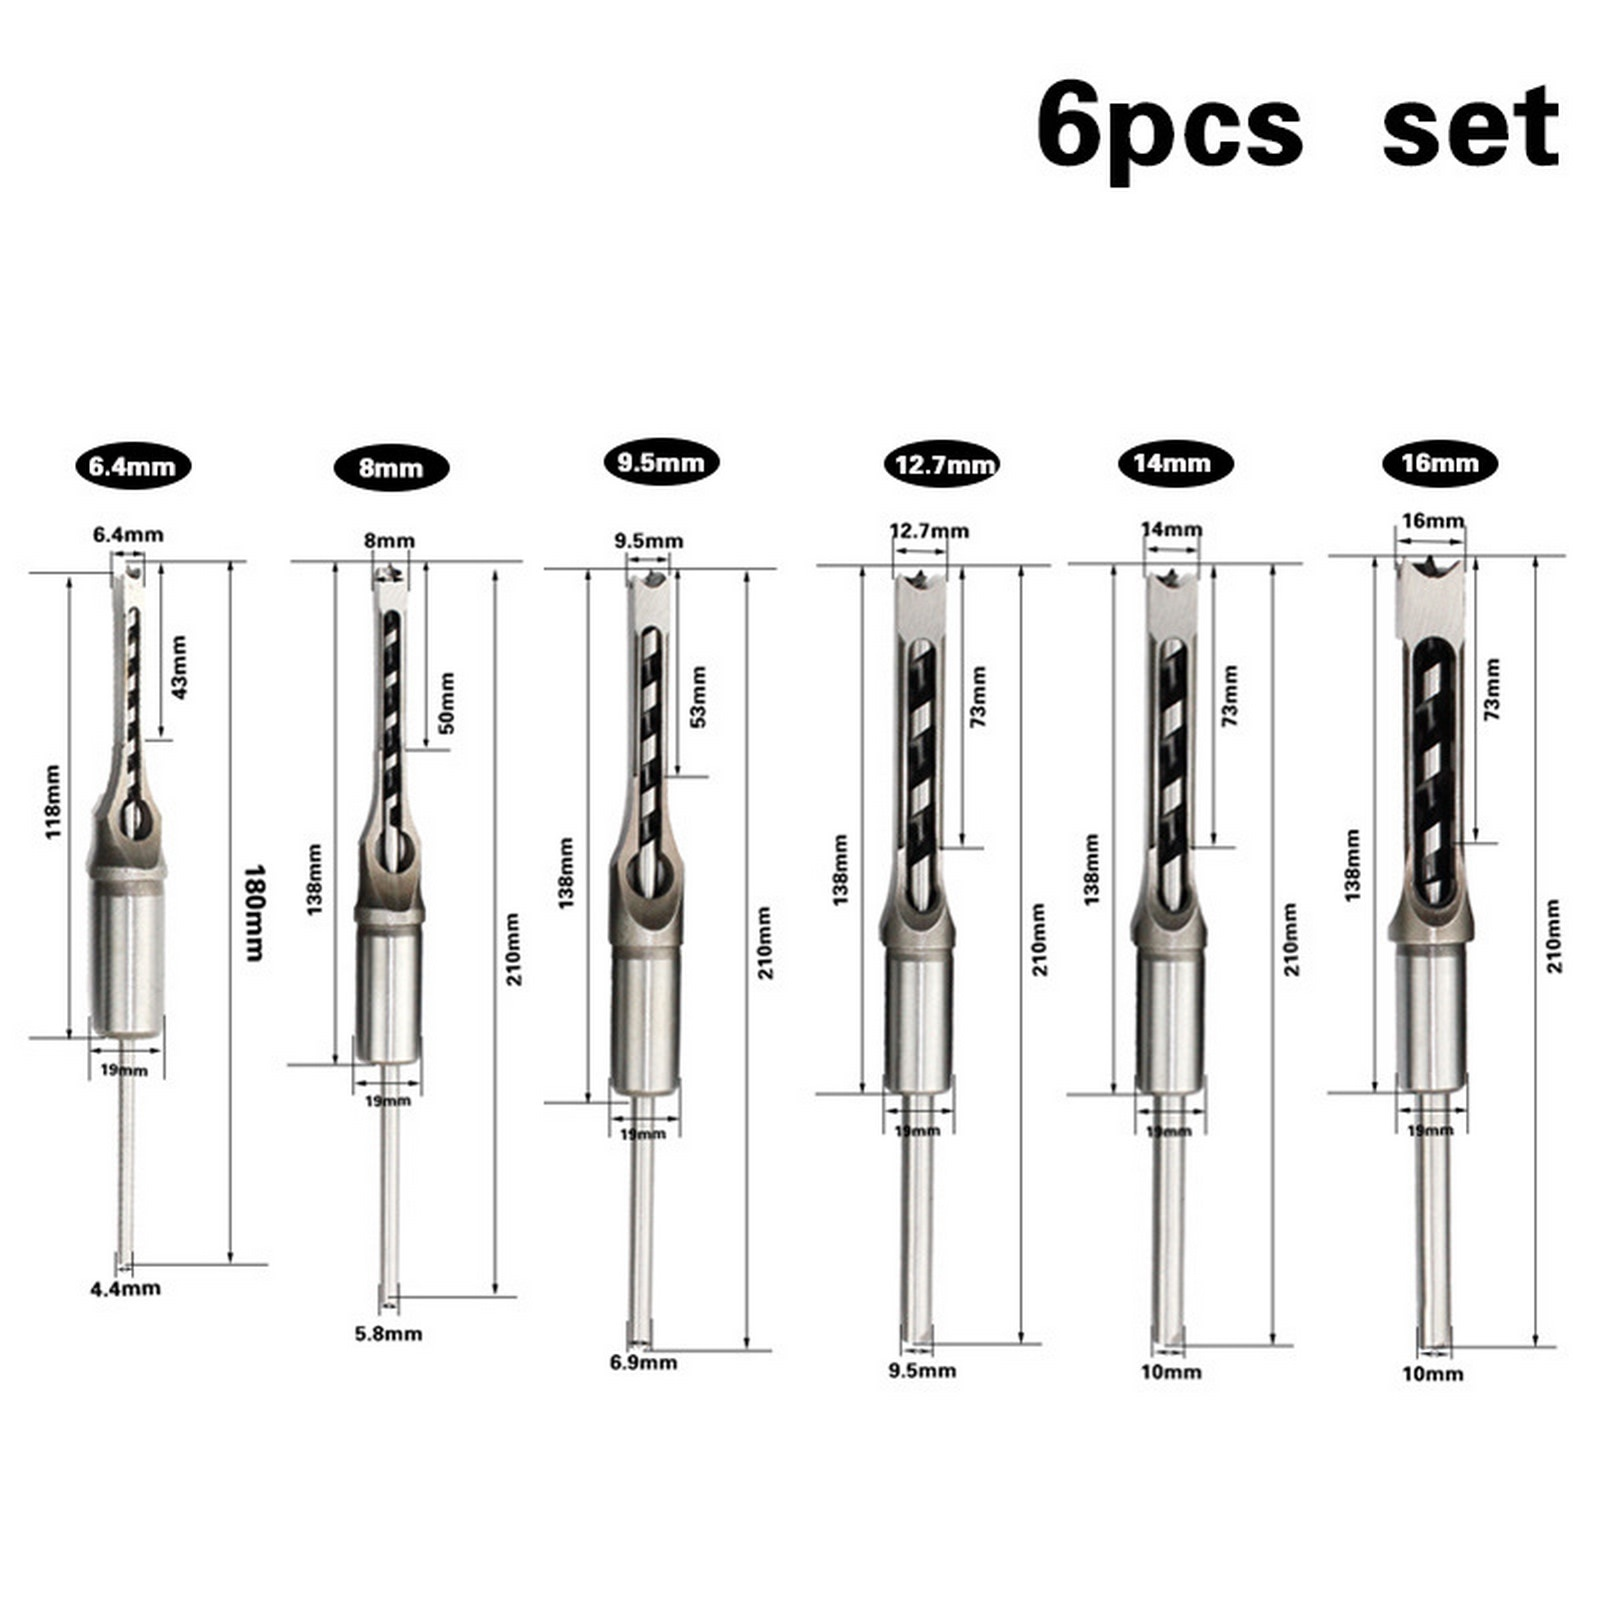 6PCS Woodworking Rotary Bit Set Square Hole Square Bit Set Mortise Chisel Extended Twist Bit Saw Drill Hand Tool Hole Opener